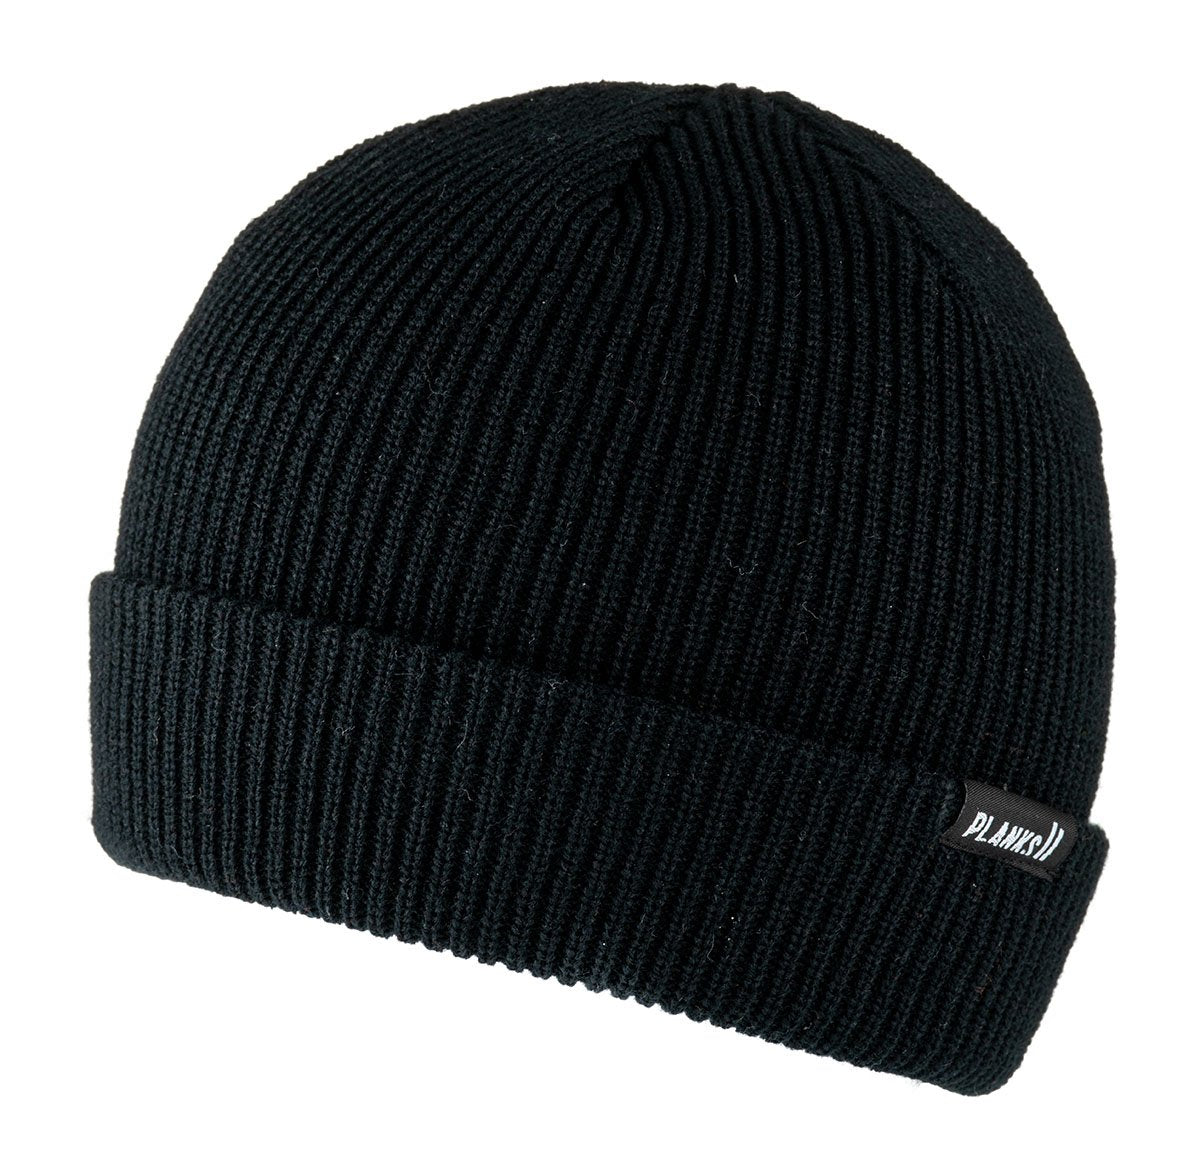 Planks Essentials Beanie | Planks Clothing